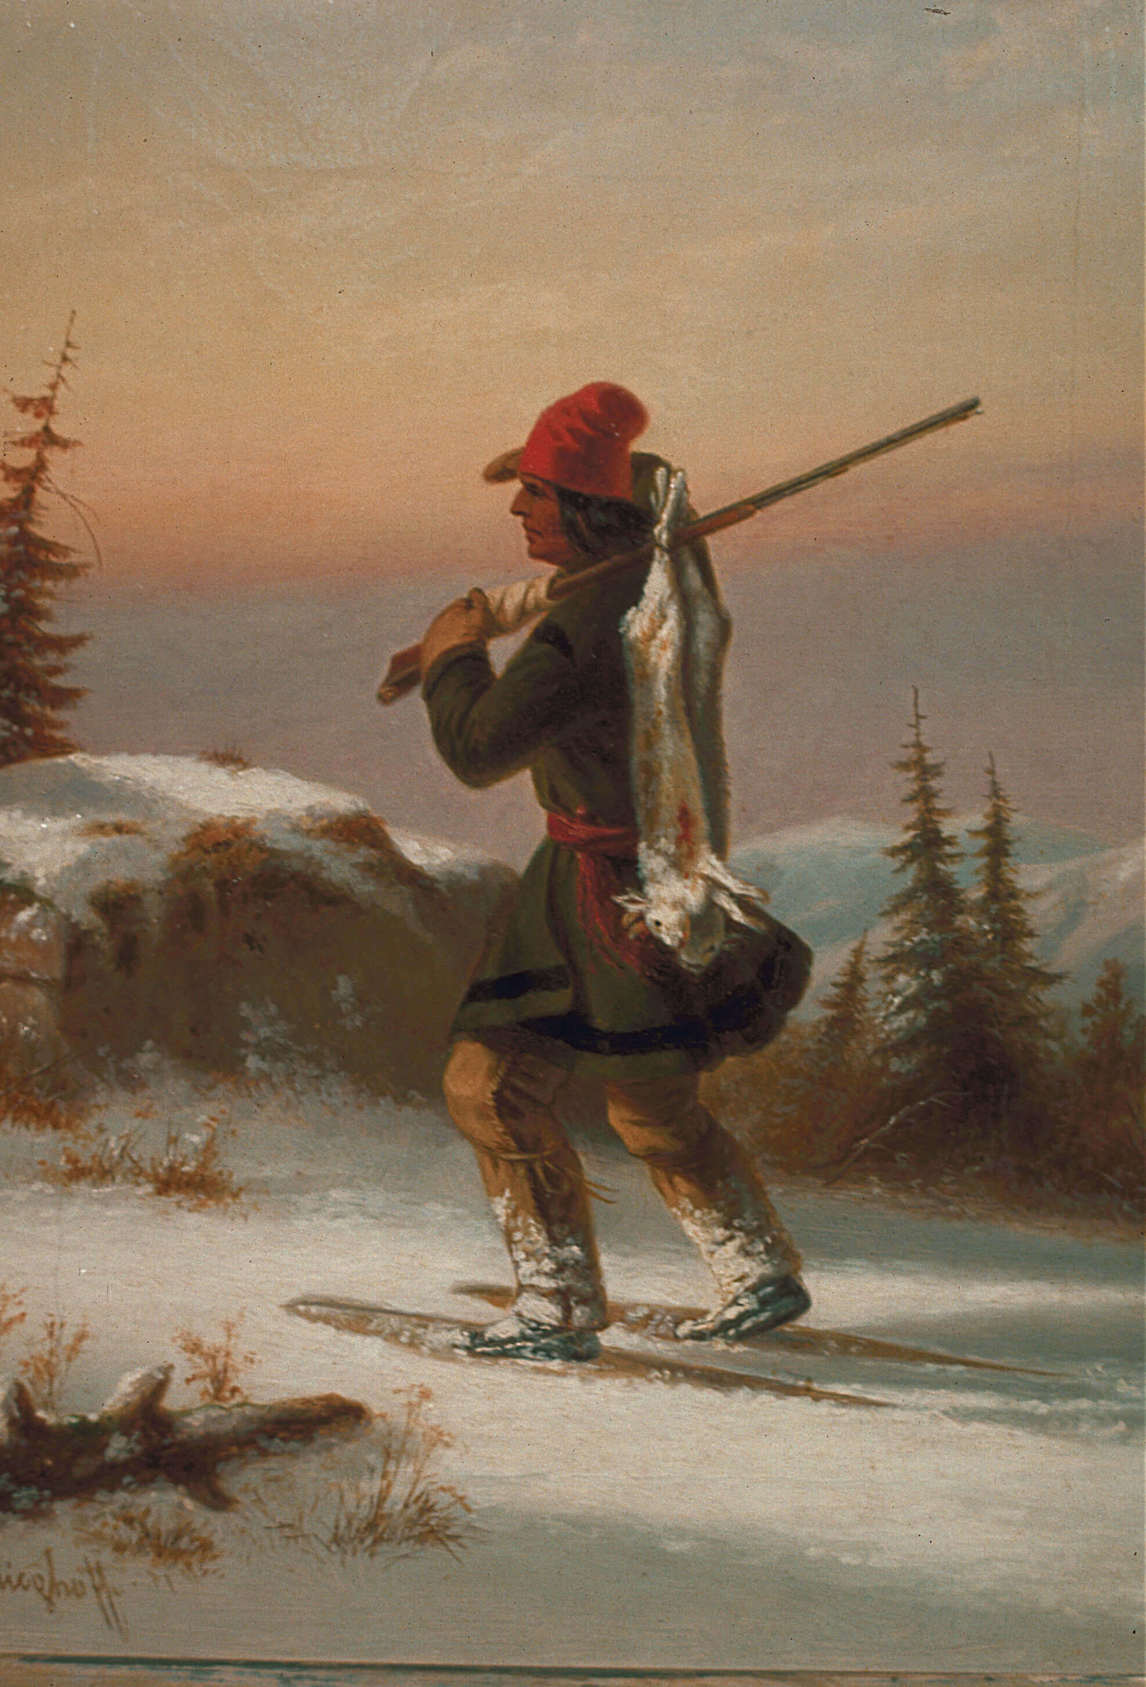 Art Canada Institute, Zacharie Vincent, Huron-Wendat from Lorette, c. 1855, by Cornelius Krieghoff